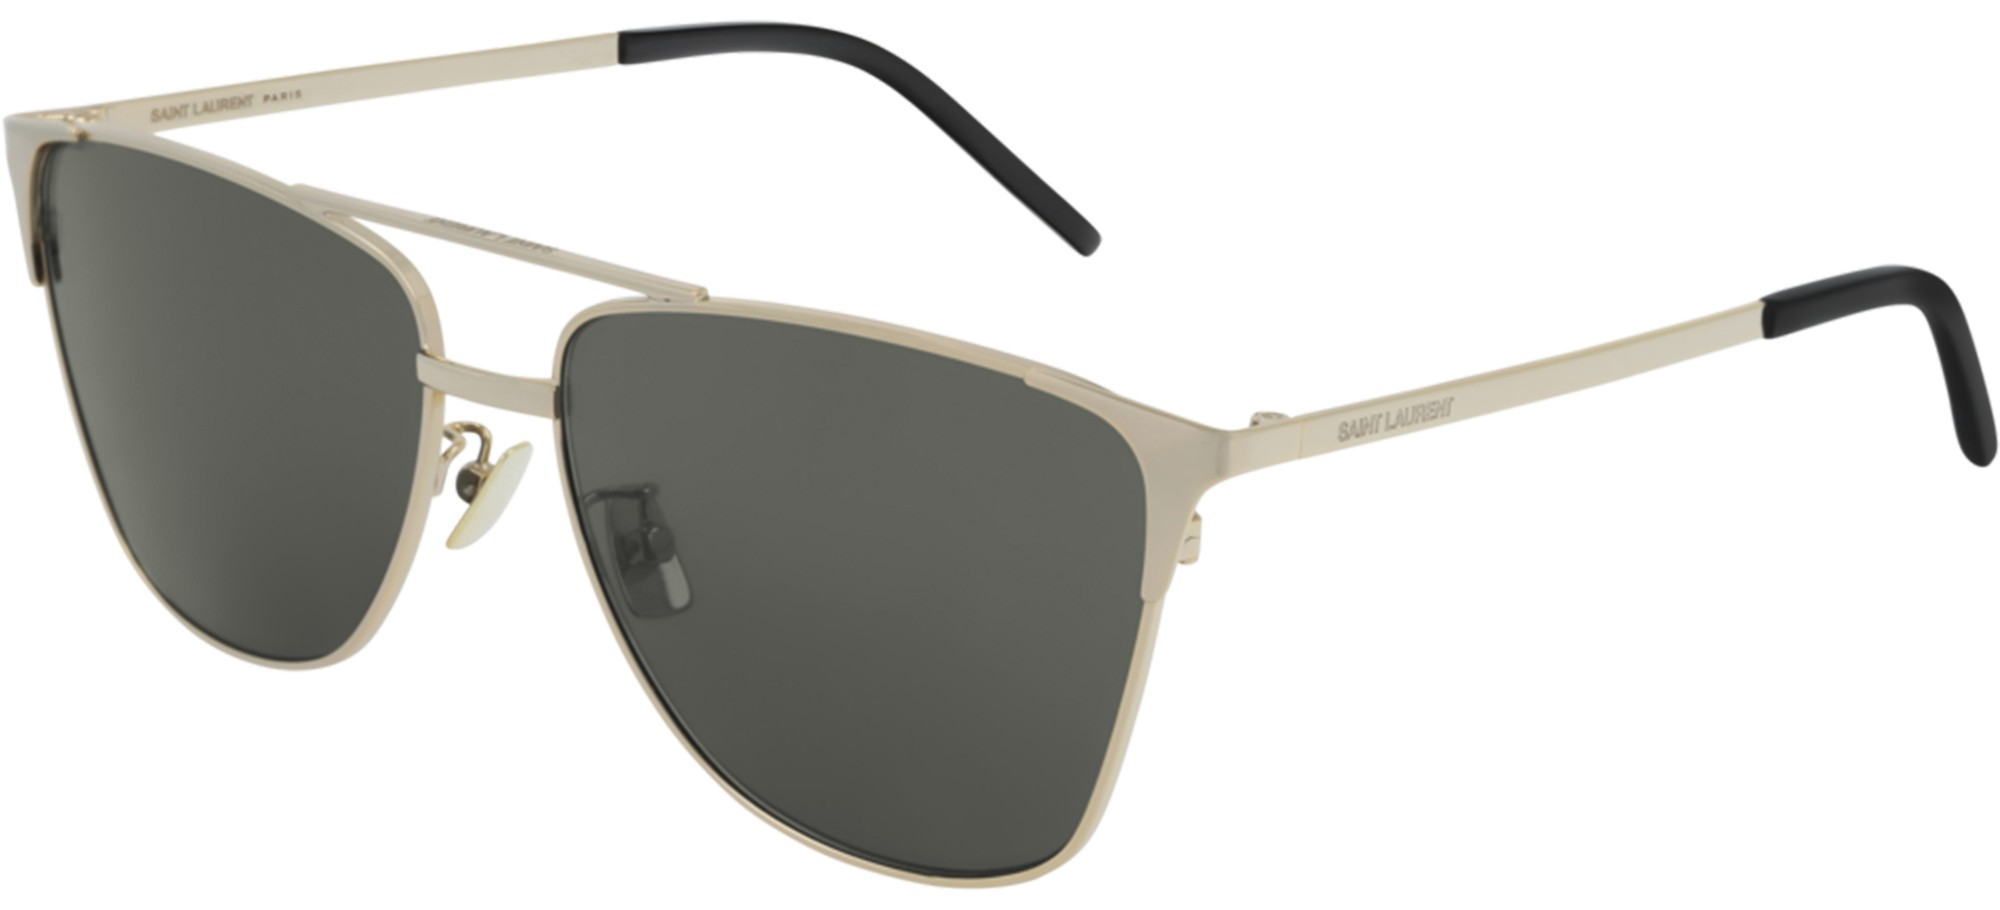 Saint Laurent sunglasses SL 280